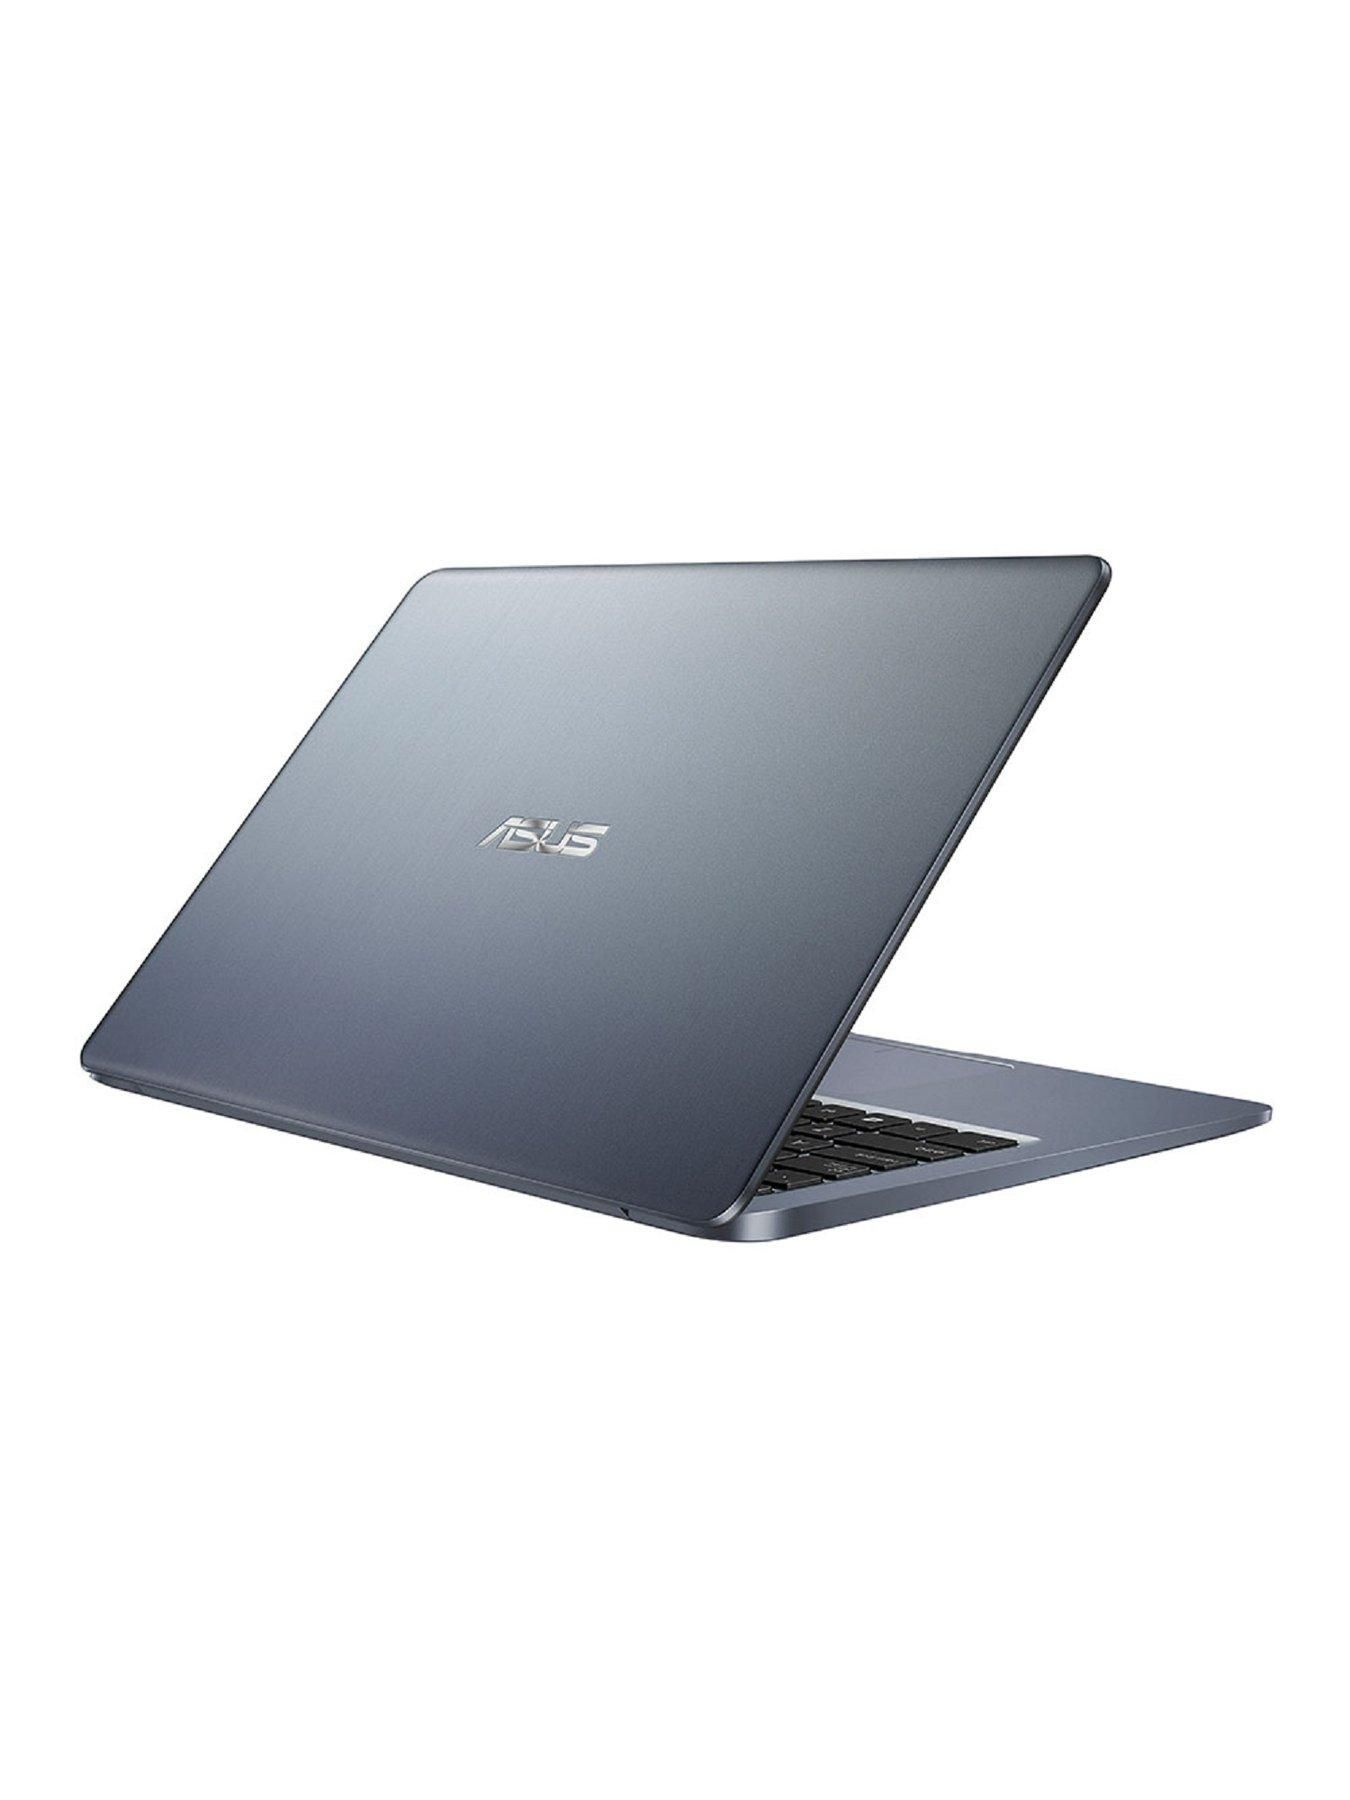 Laptops | Shop for Laptops | Very.co.uk #excelwordaccessetc